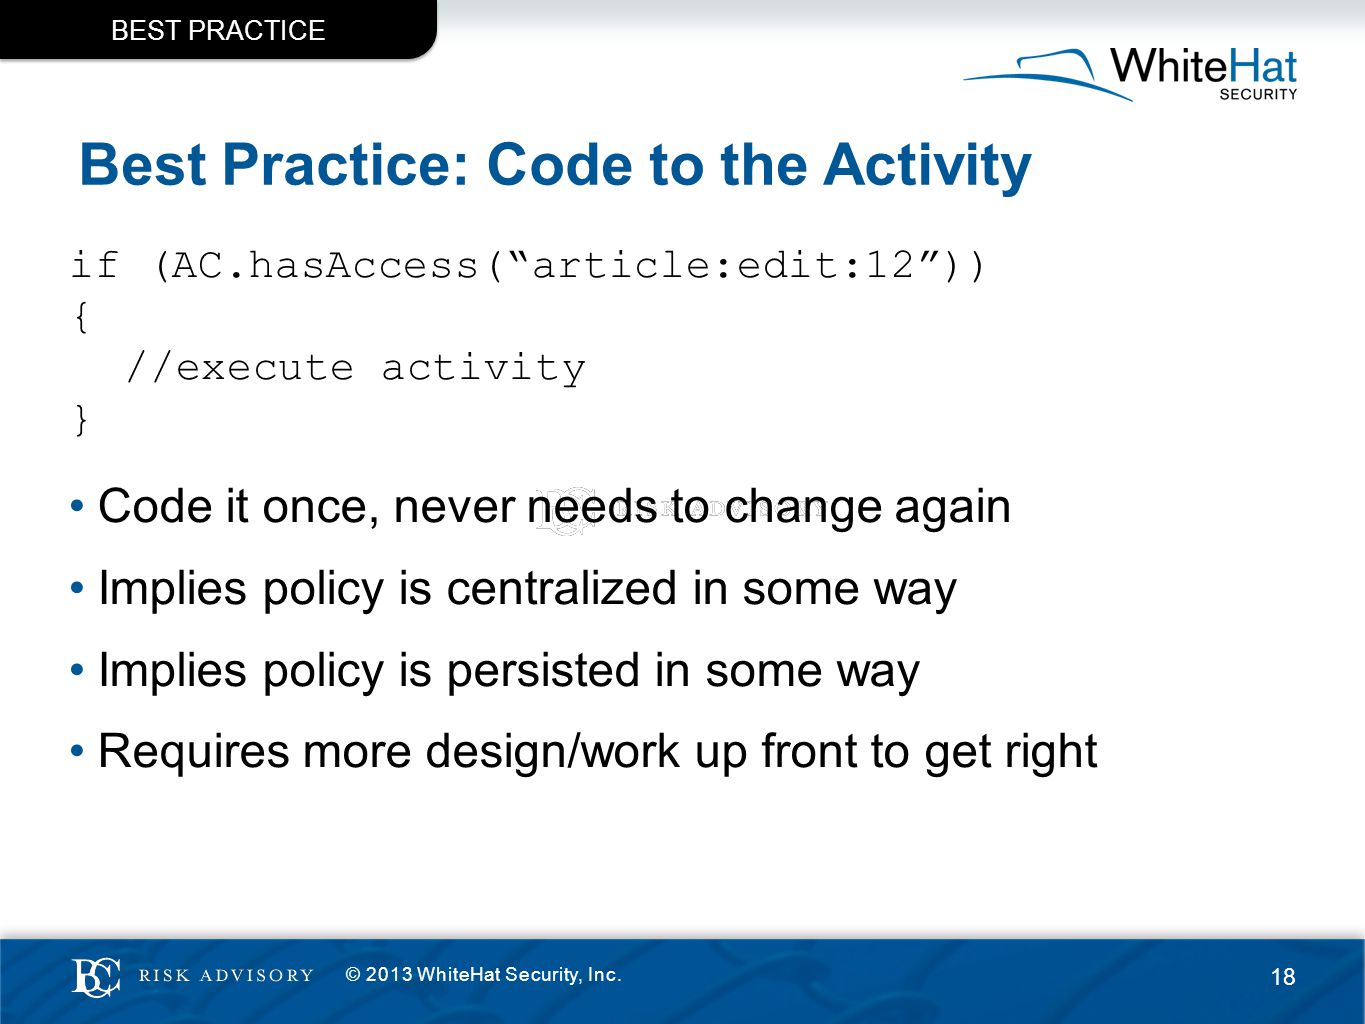 Best Practice: Code to the Activity if (AC.hasAccess( article:edit:12 )) { //execute activity } Code it once, never needs to change again Implies policy is centralized in some way Implies policy is persisted in some way Requires more design/work up front to get right BEST PRACTICE © 2013 WhiteHat Security, Inc.